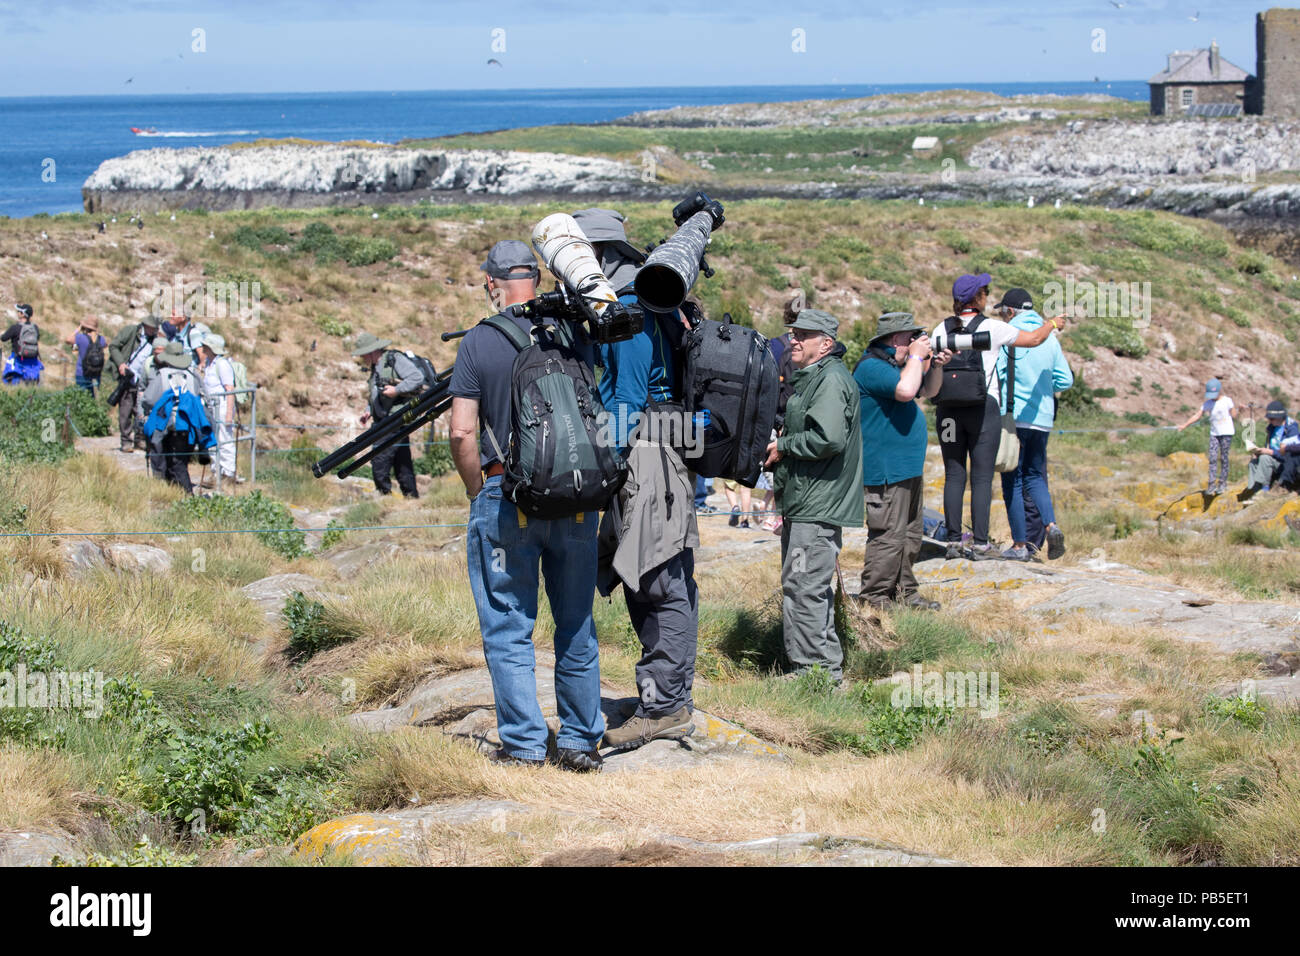 Photographers loaded with expensive camera equipment Farne Islands Northumberland UK - Stock Image